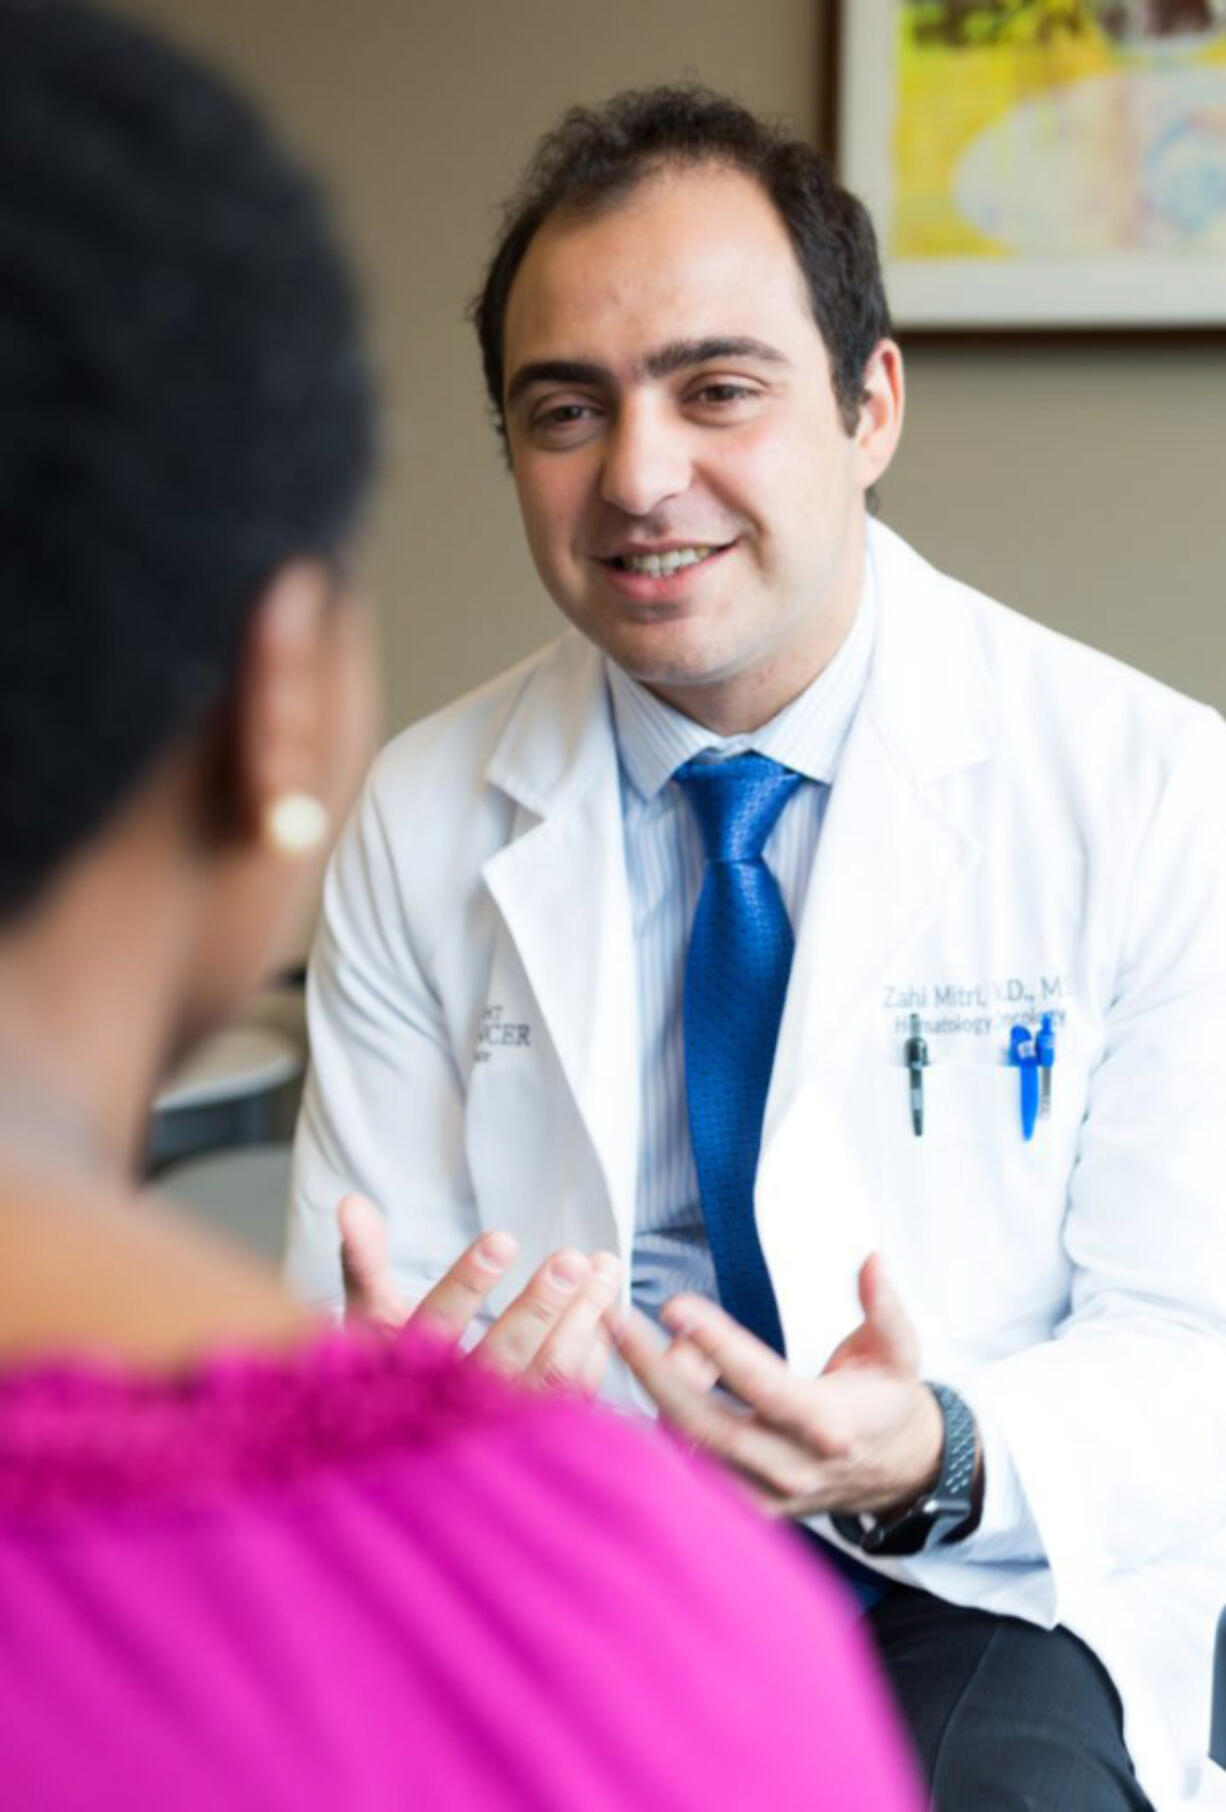 Zahi Mitri, M.D., M.S., is an OHSU School of Medicine assistant professor and a medical oncologist at the OHSU Knight Cancer Institute in Portland.